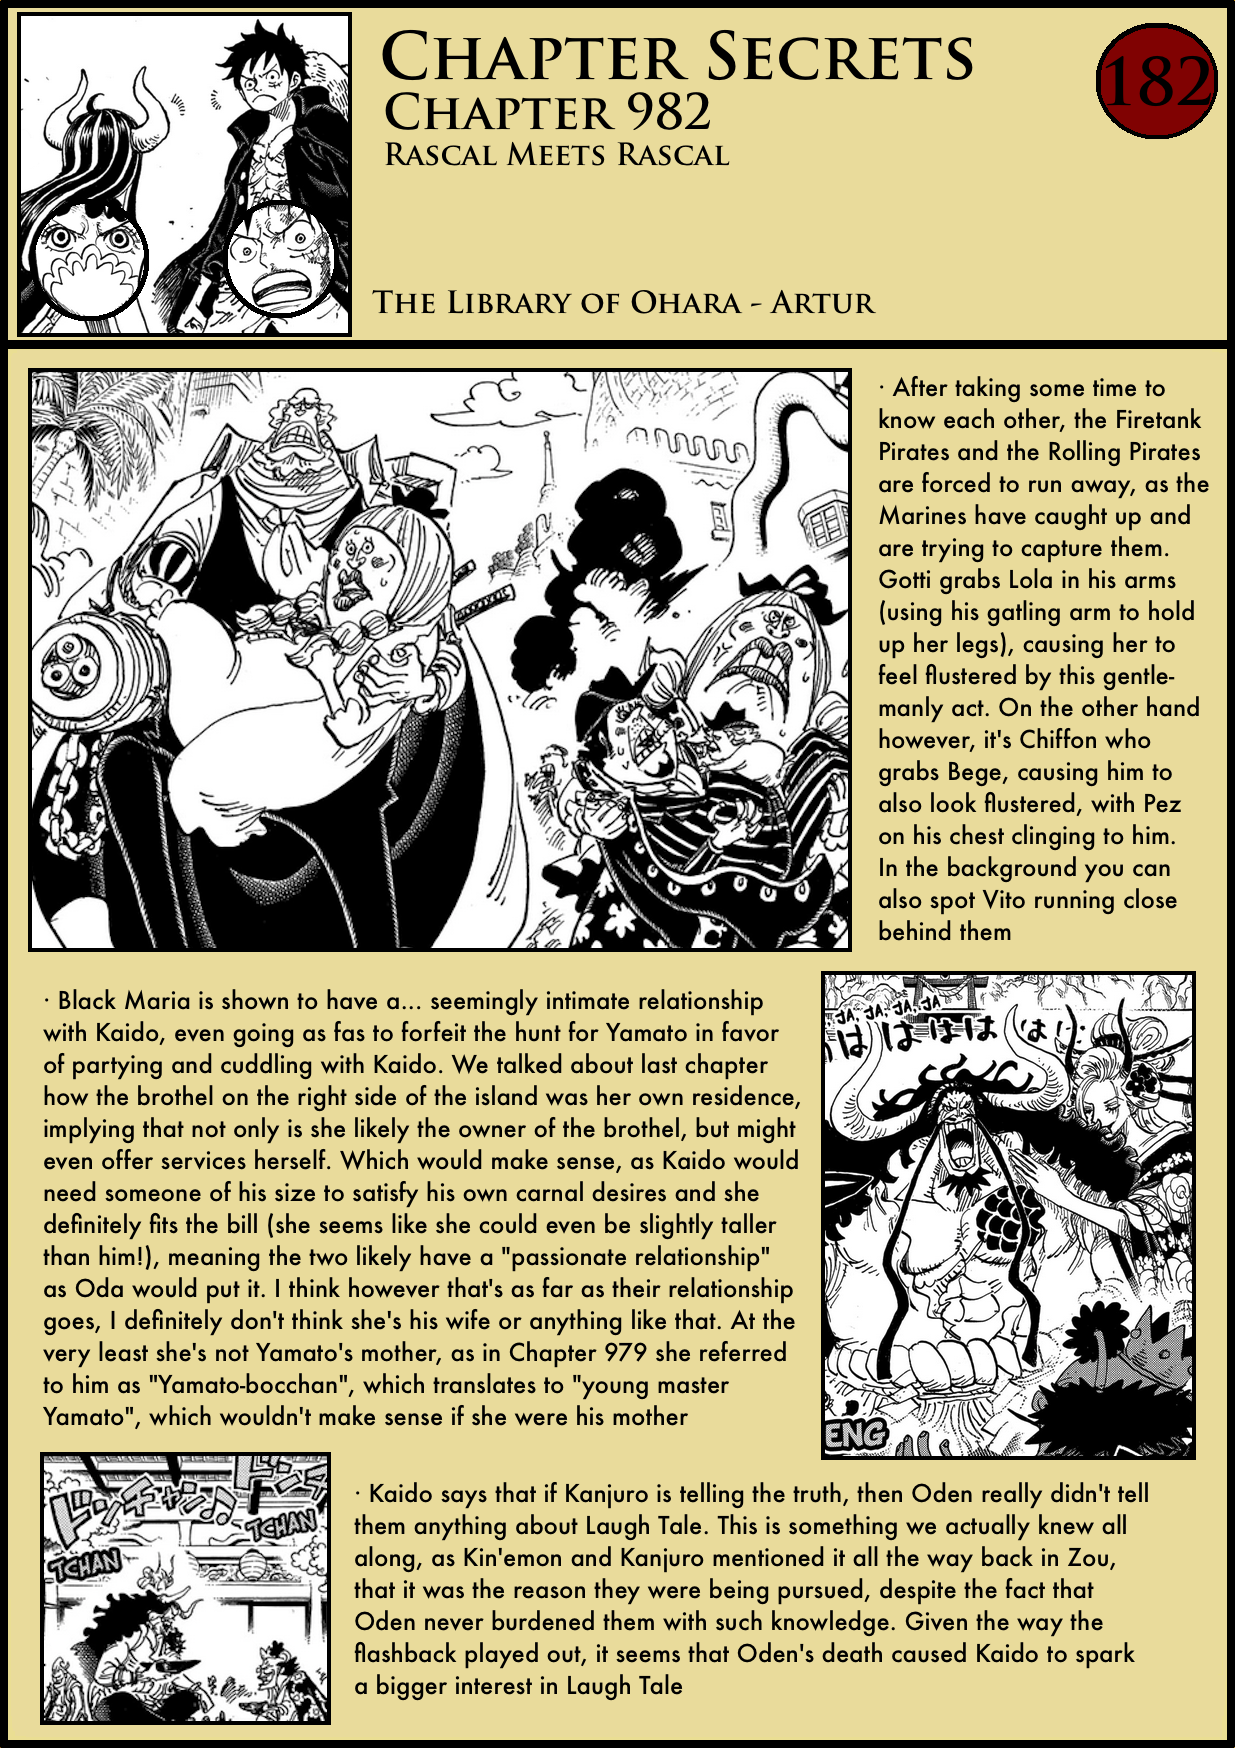 Chapter Secrets Chapter 982 In Depth Analysis The Library Of Ohara